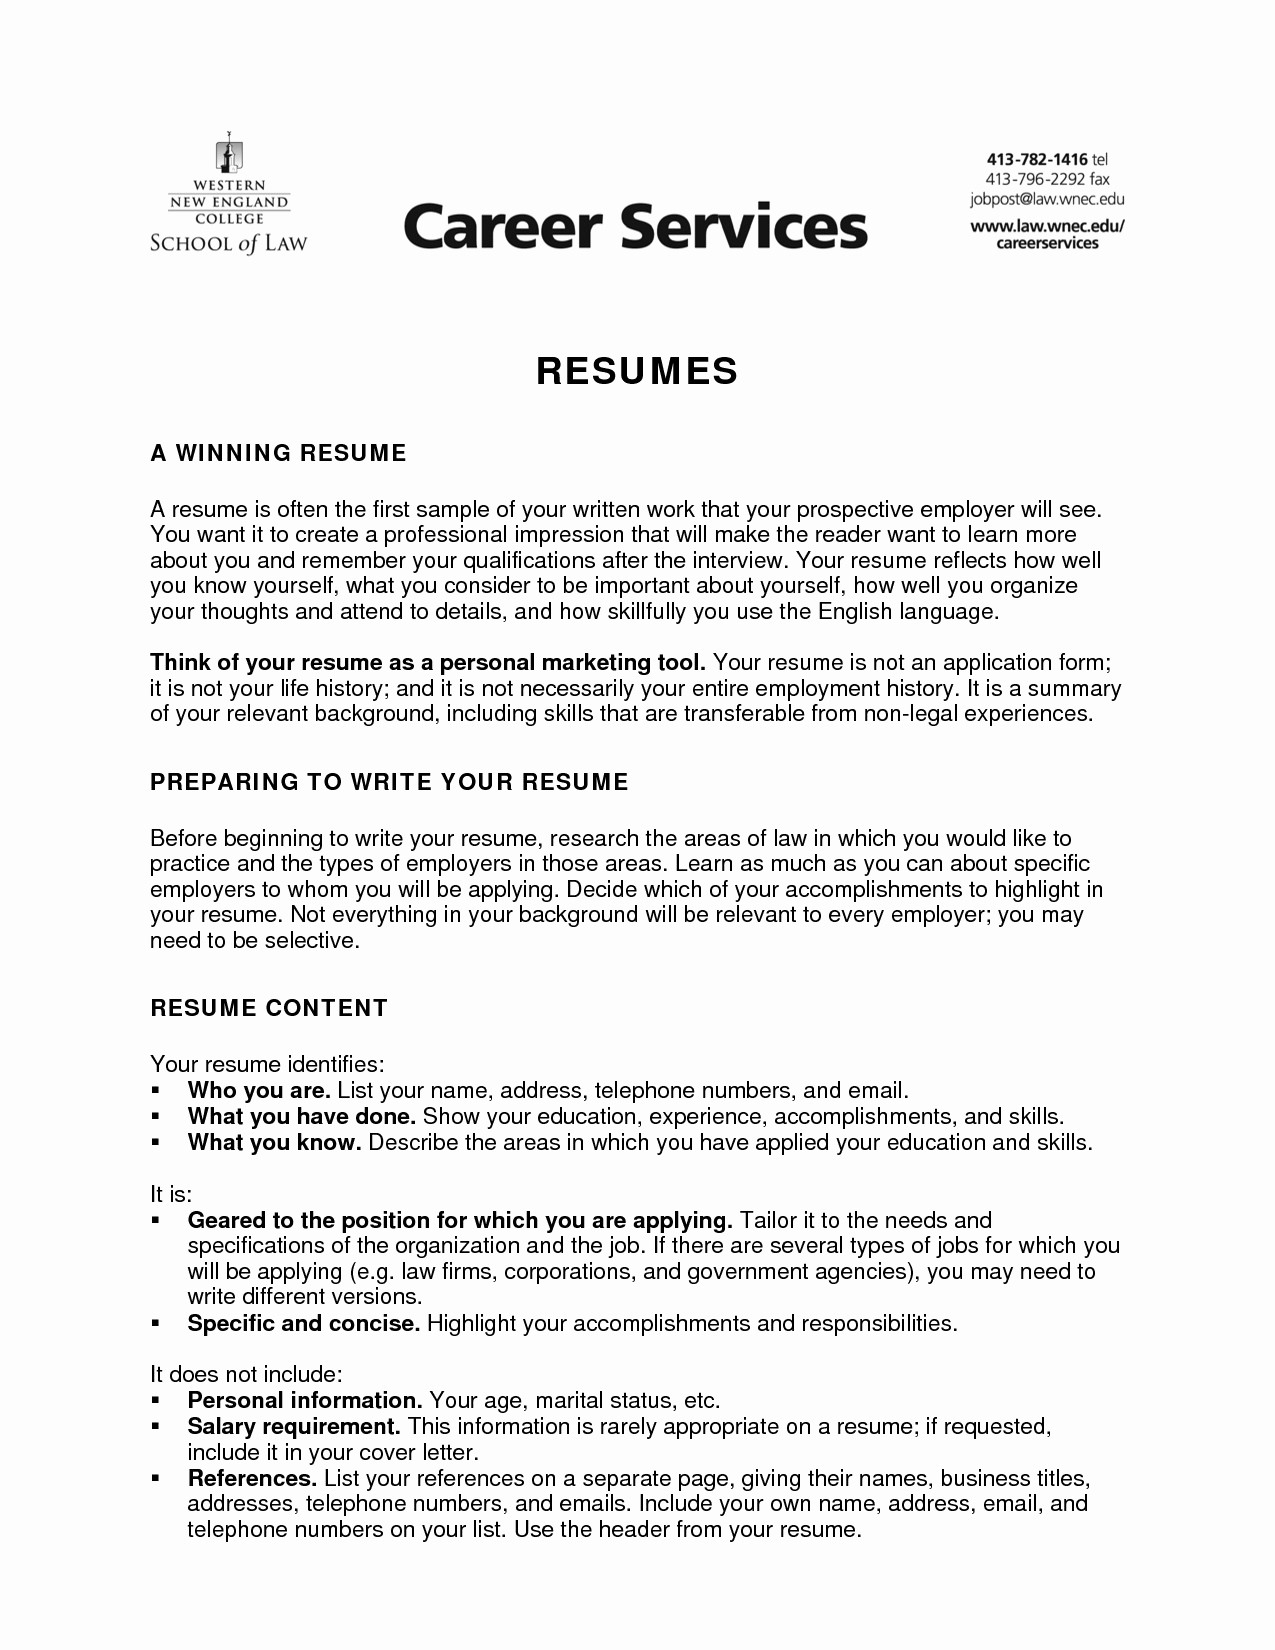 Criminal Record Disclosure Letter Template - How to Address Salary Requirements In Cover Letter